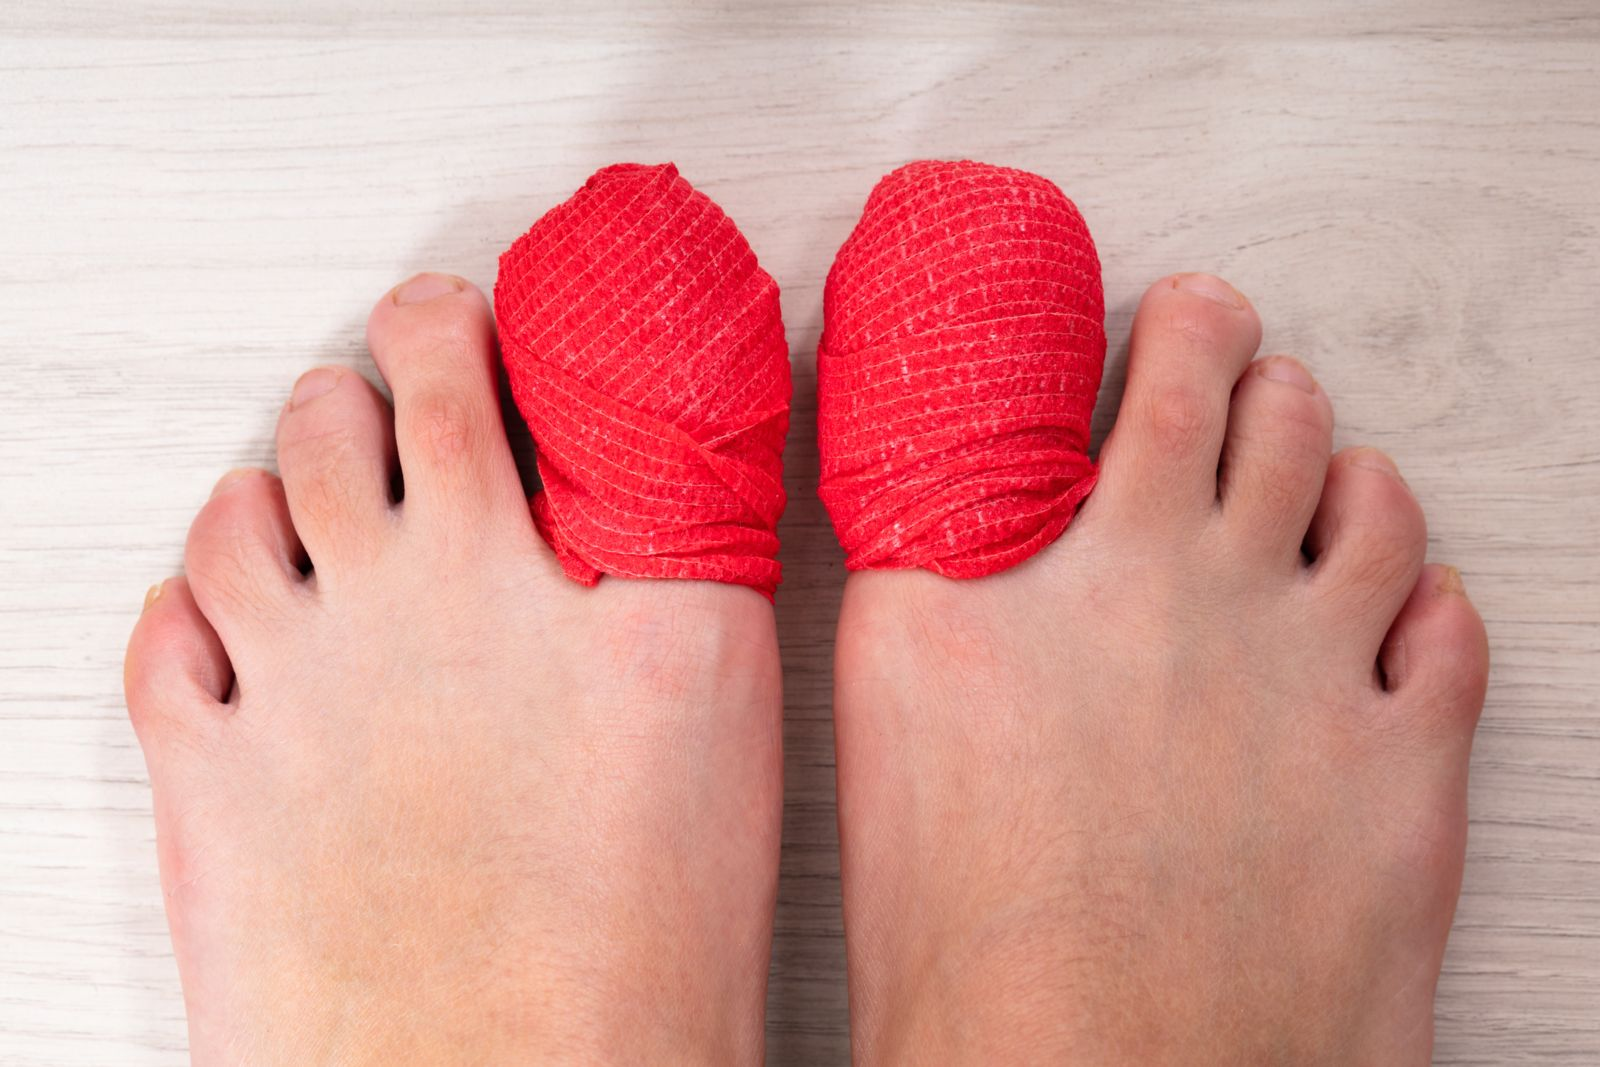 Ingrown toenail surgery performed by Houston podiatrist